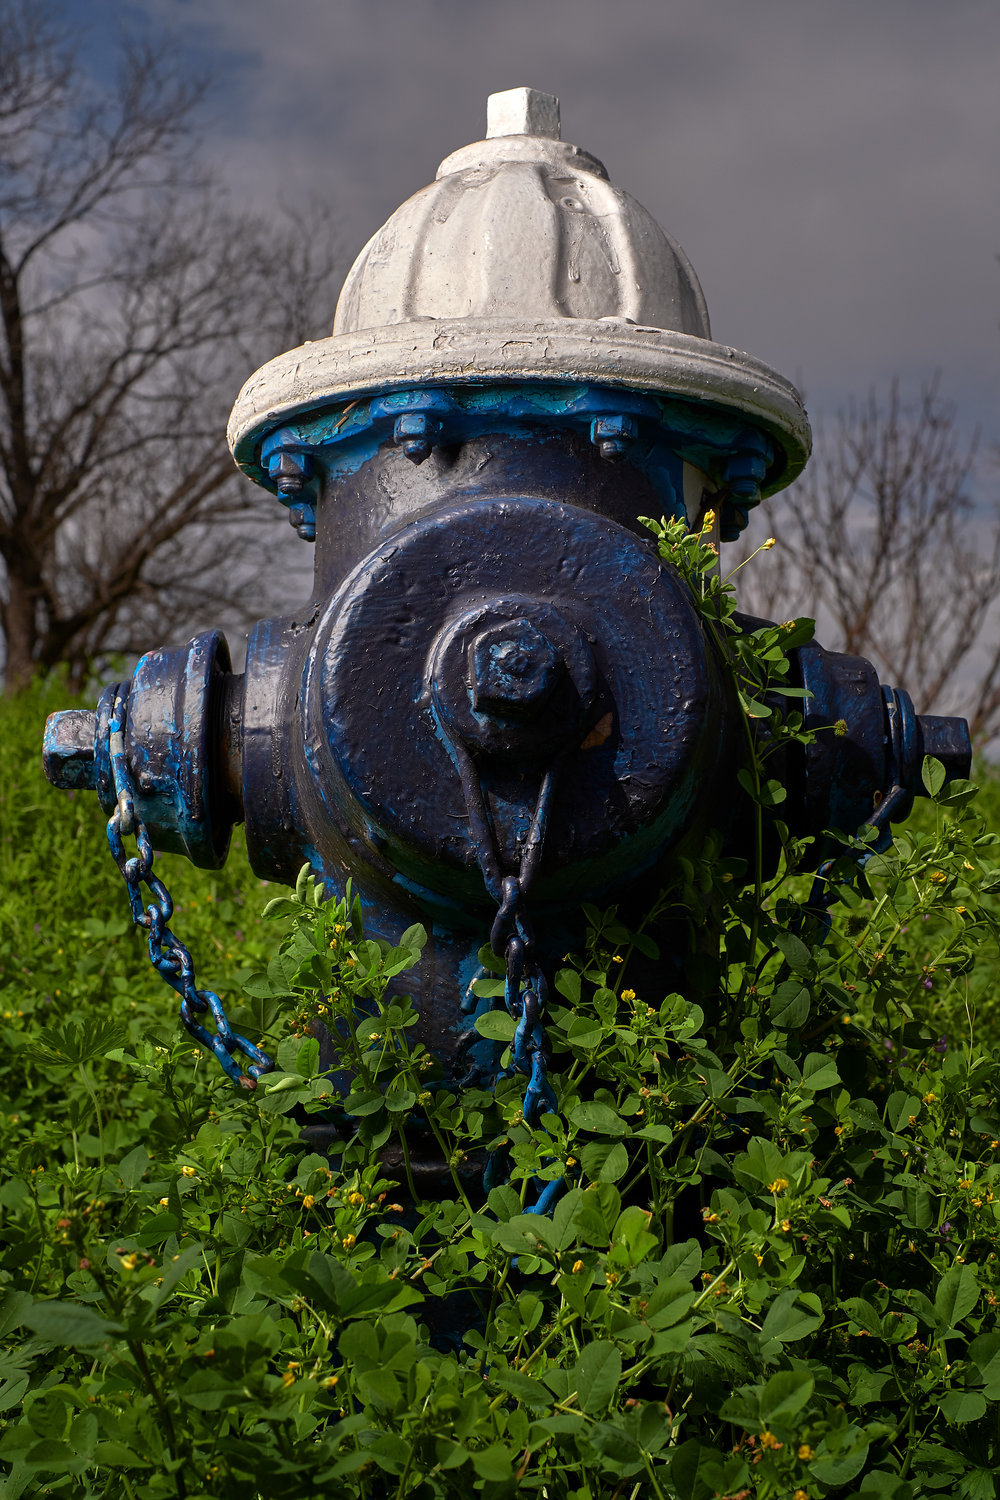 Hydrant Portrait #13